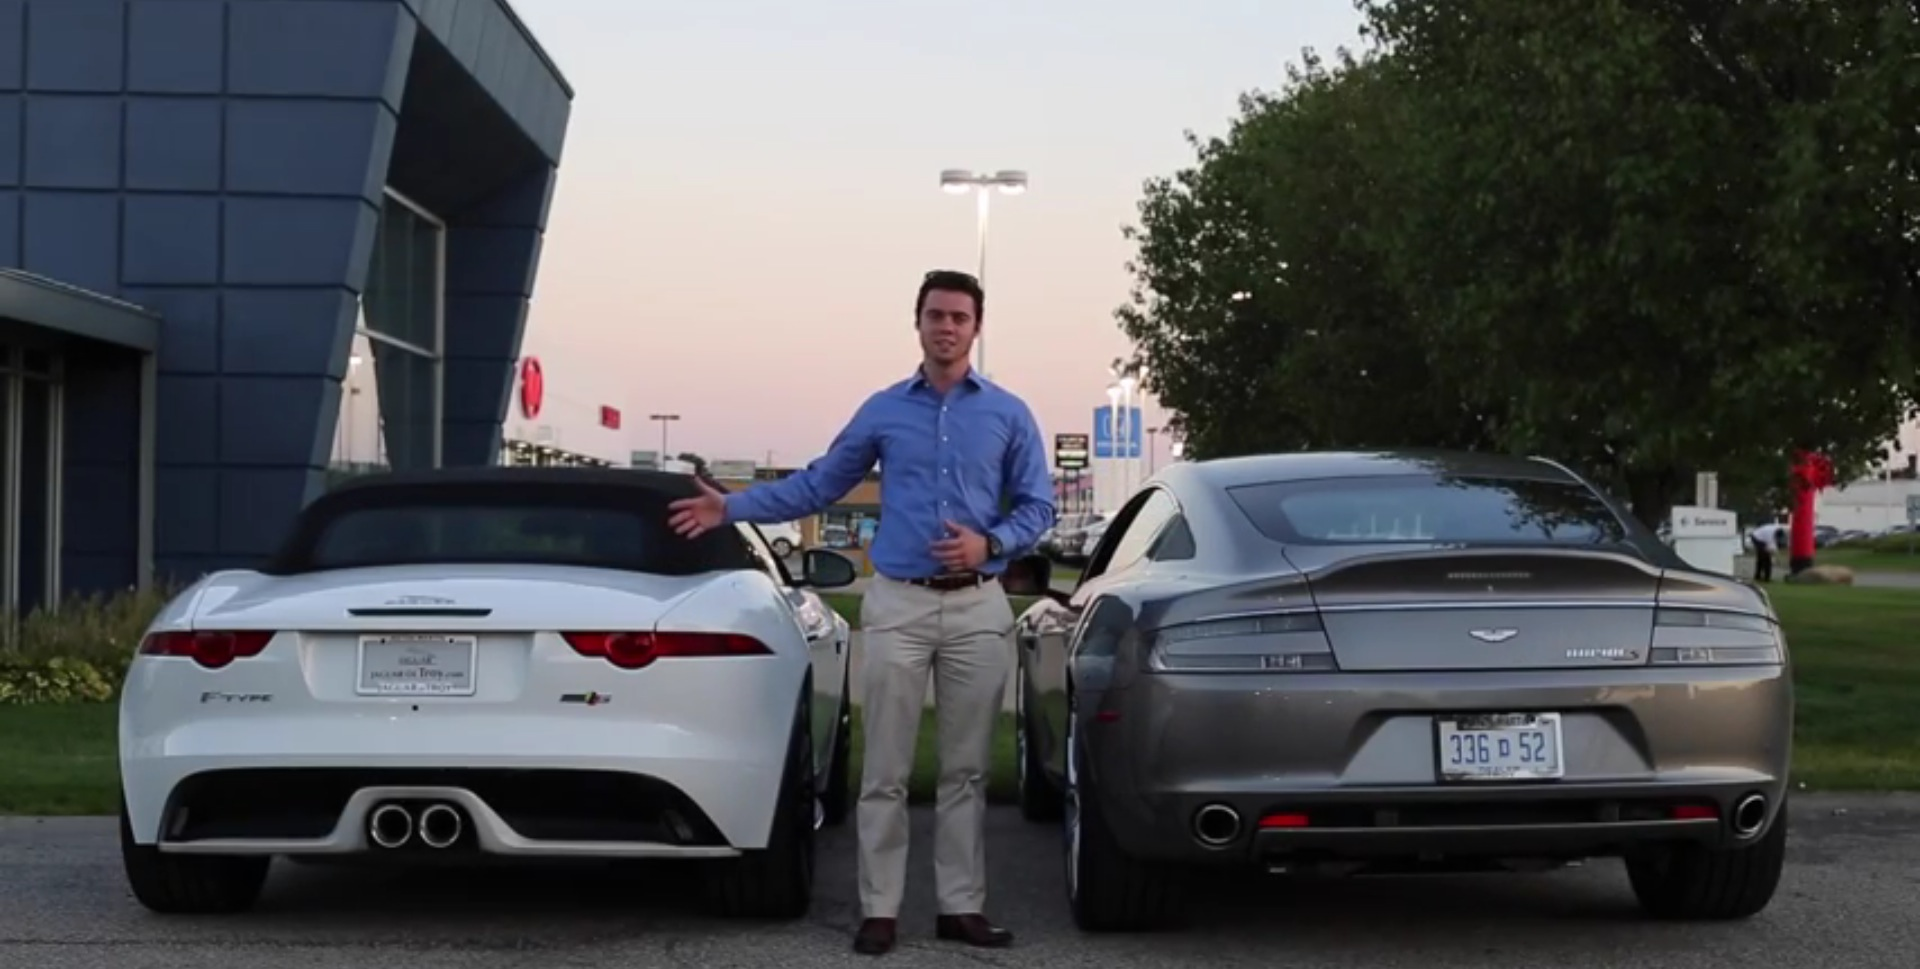 v6 jaguar f-type vs. v12 aston martin rapide s: which one sounds